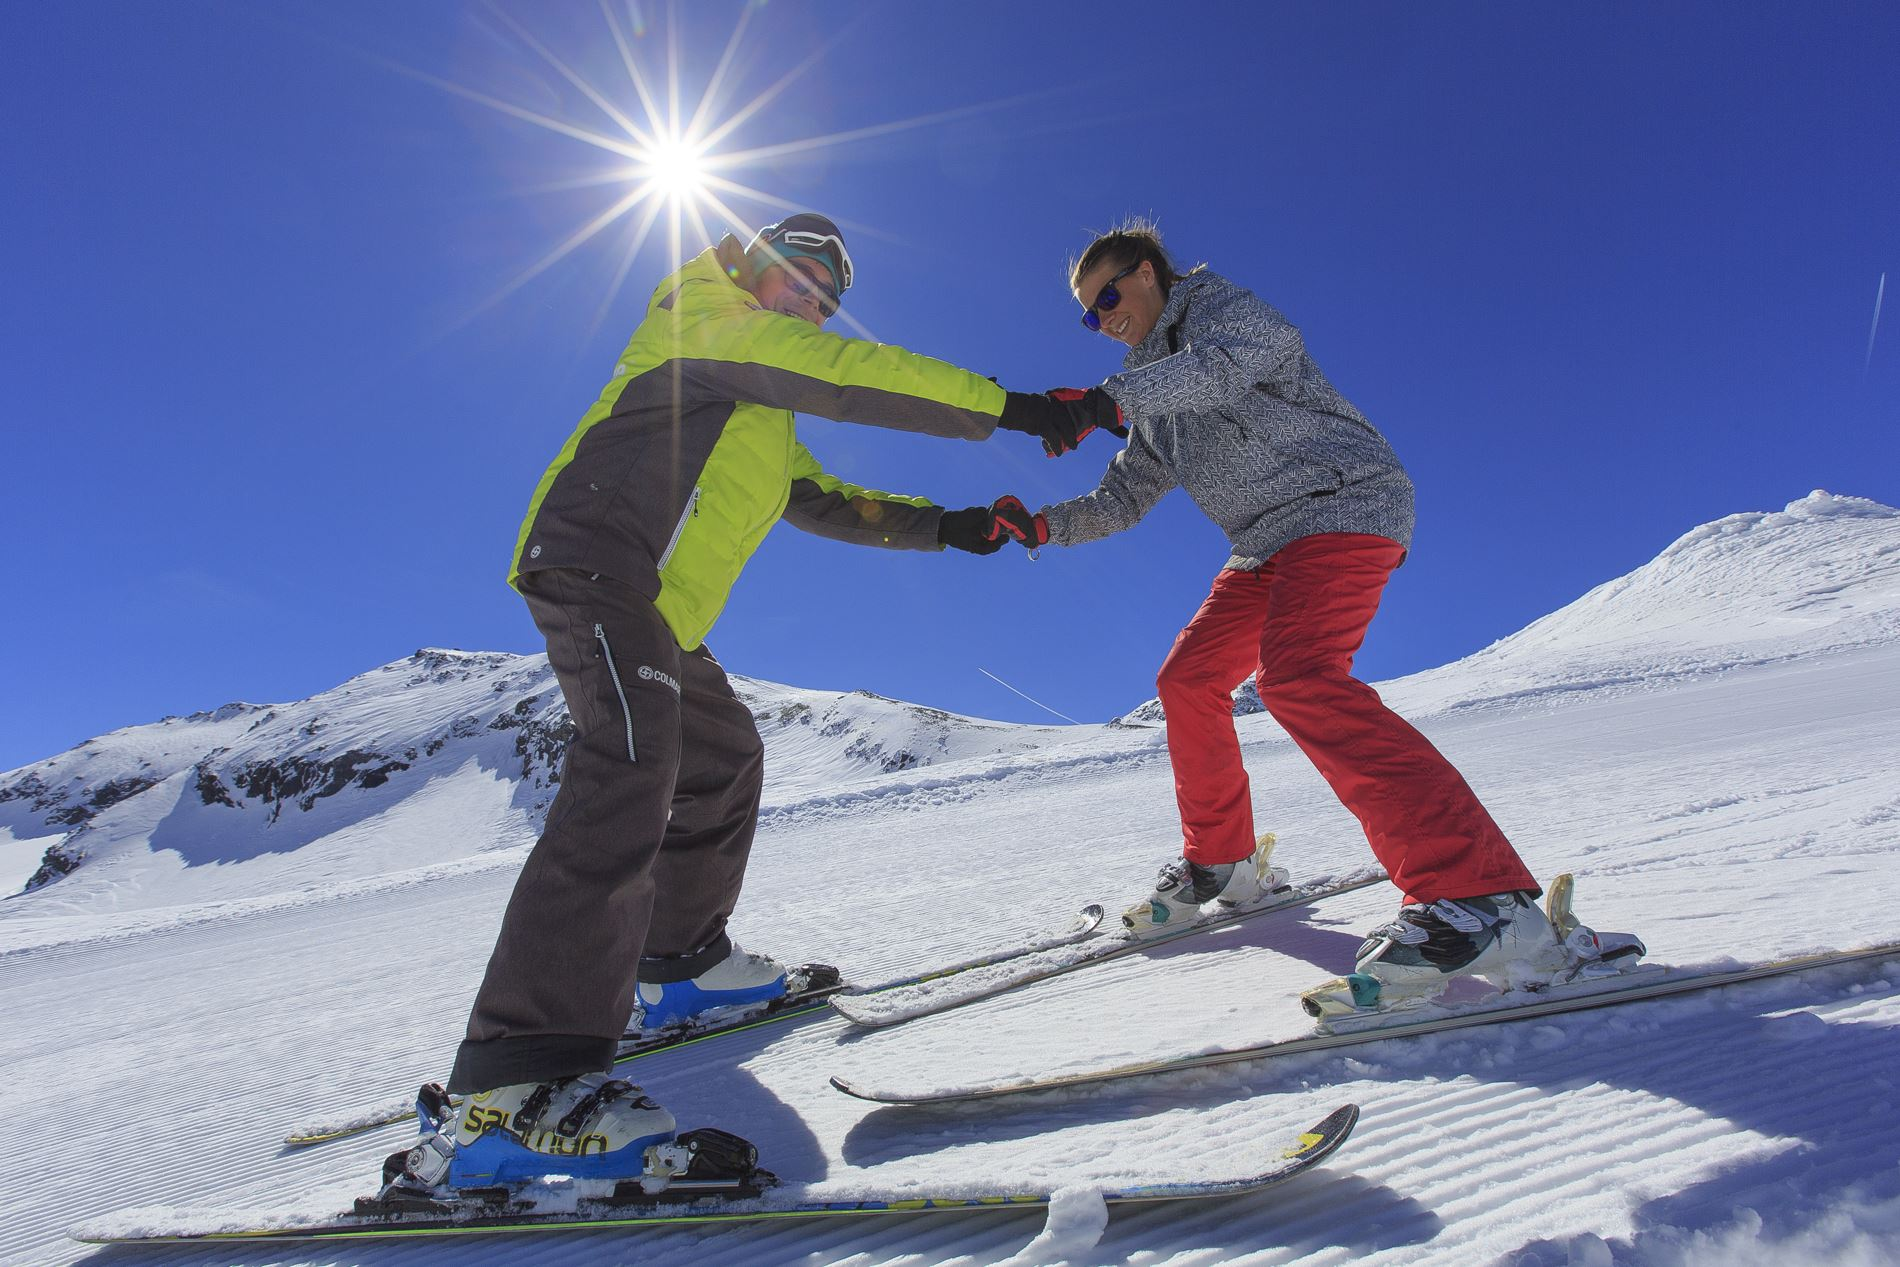 Group Ski Lessons for adults, 6 mornings + 6 afternoons